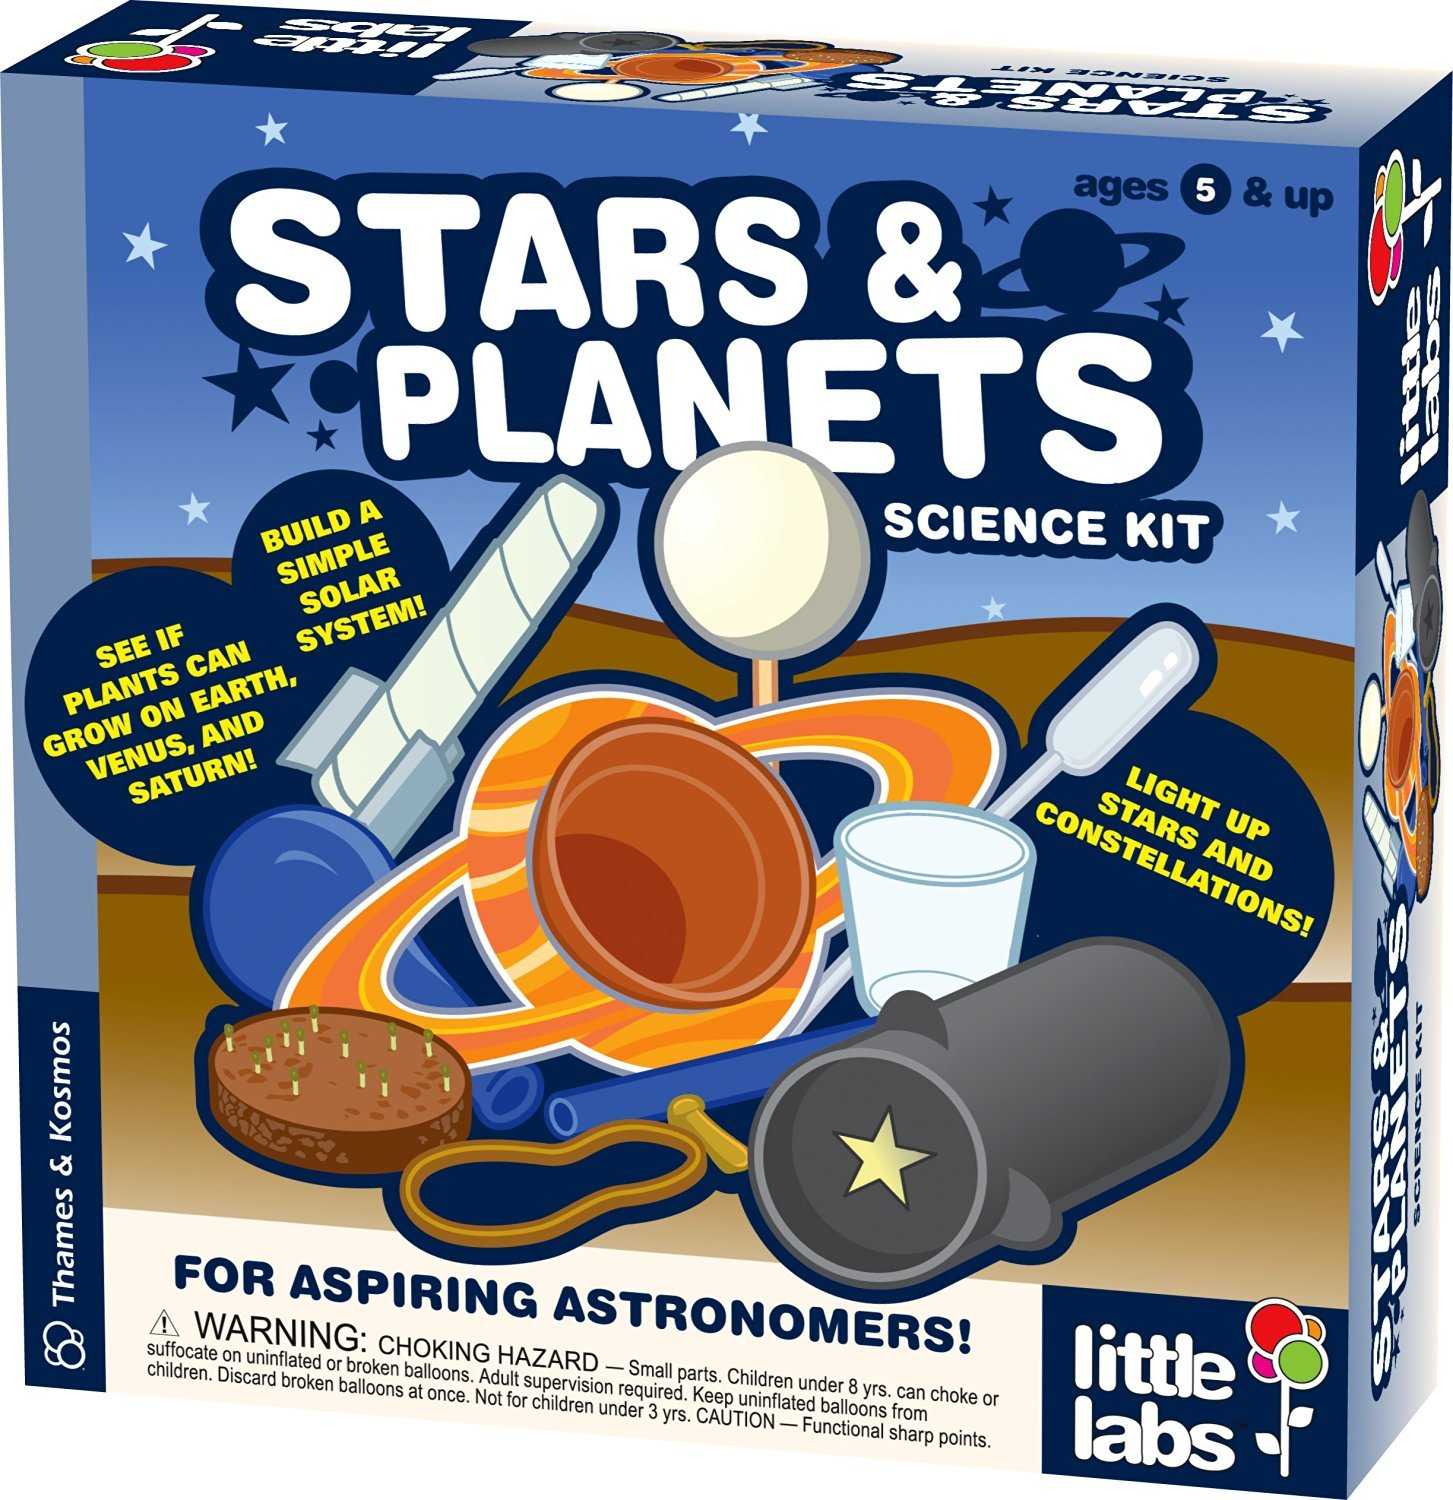 astronomy kits for teens - HD 1453×1500